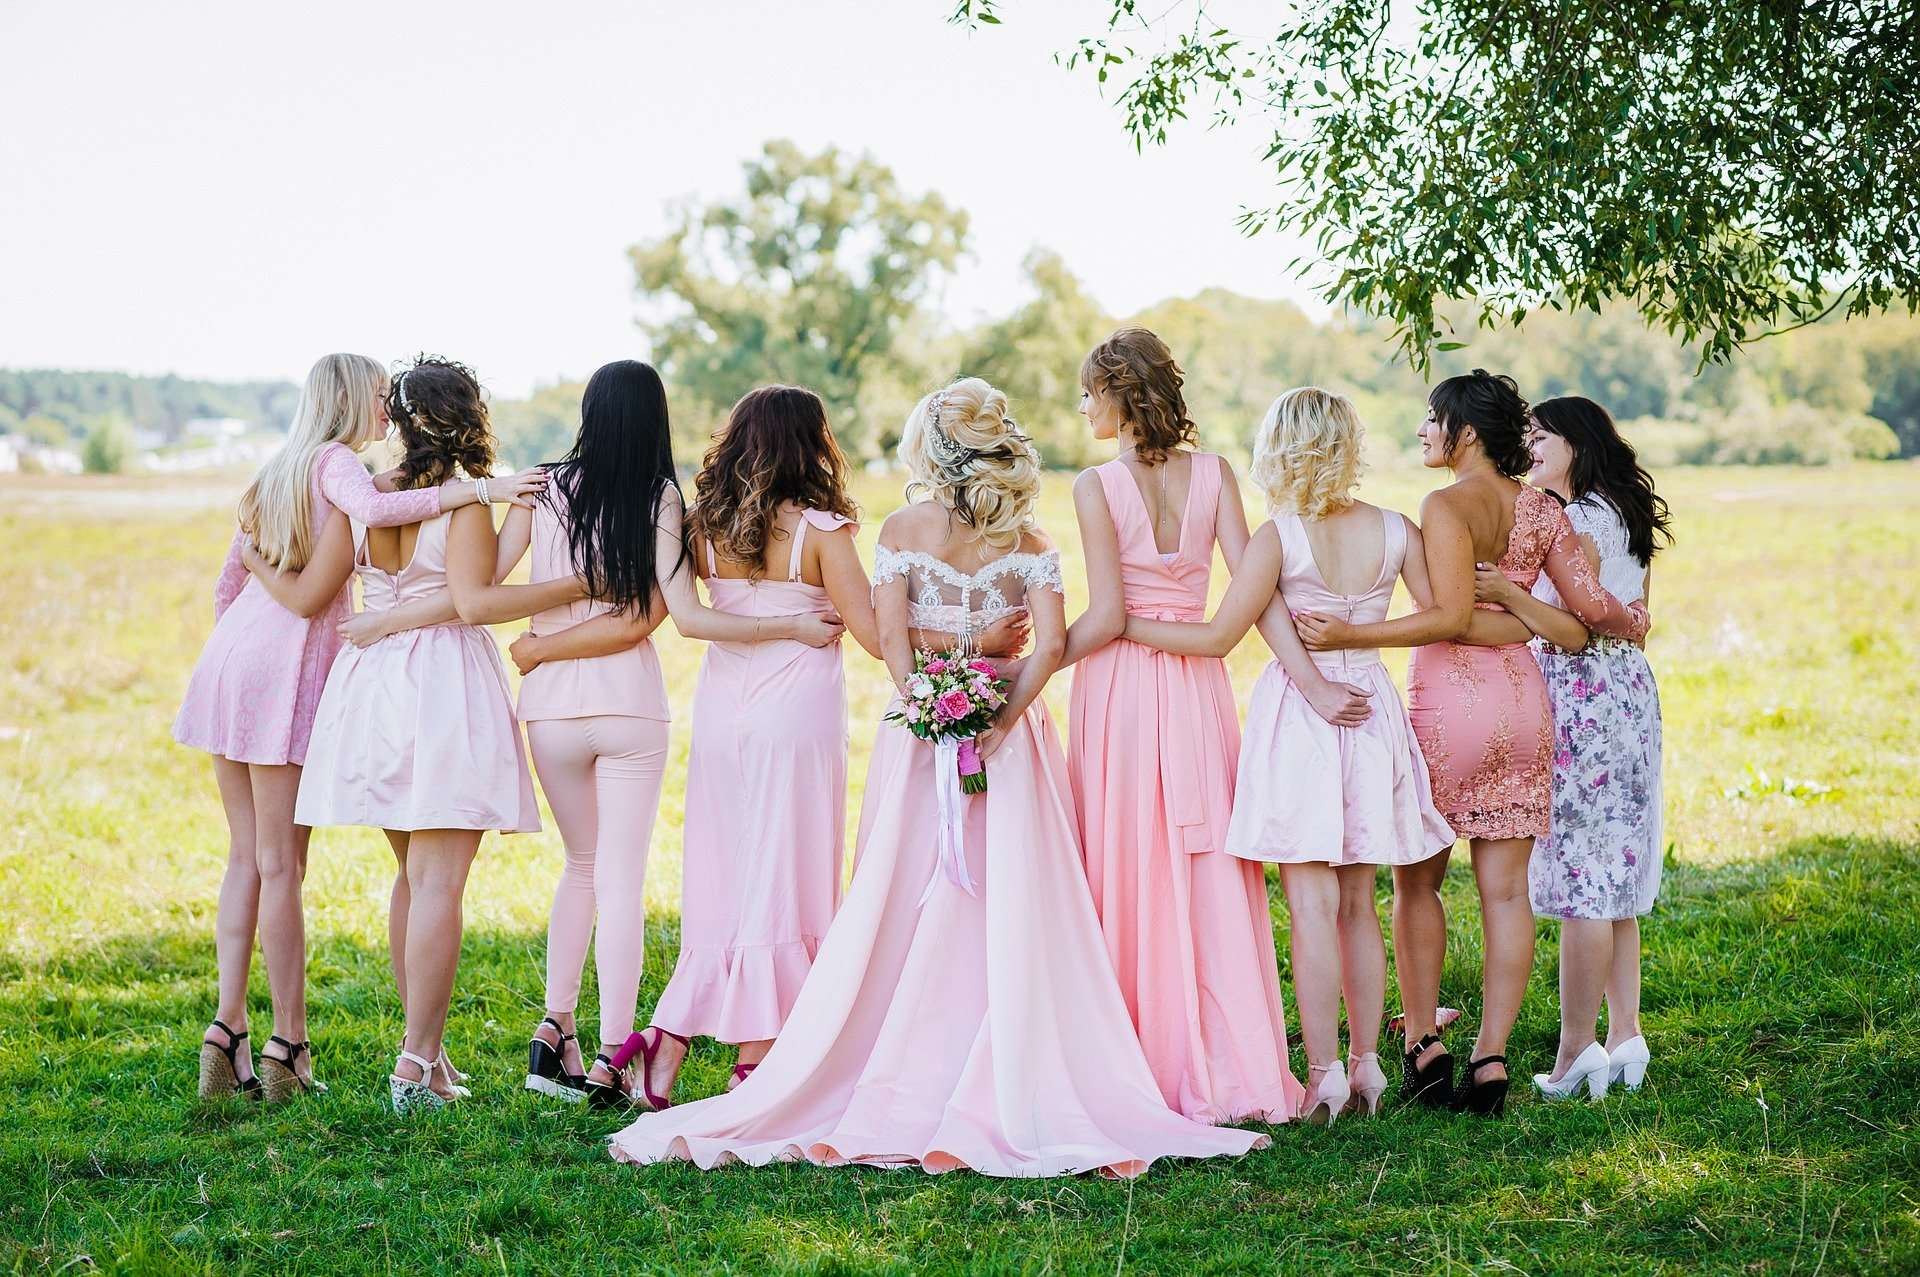 Bridesmaid Trends for 2021 - Photo of bridesmaids